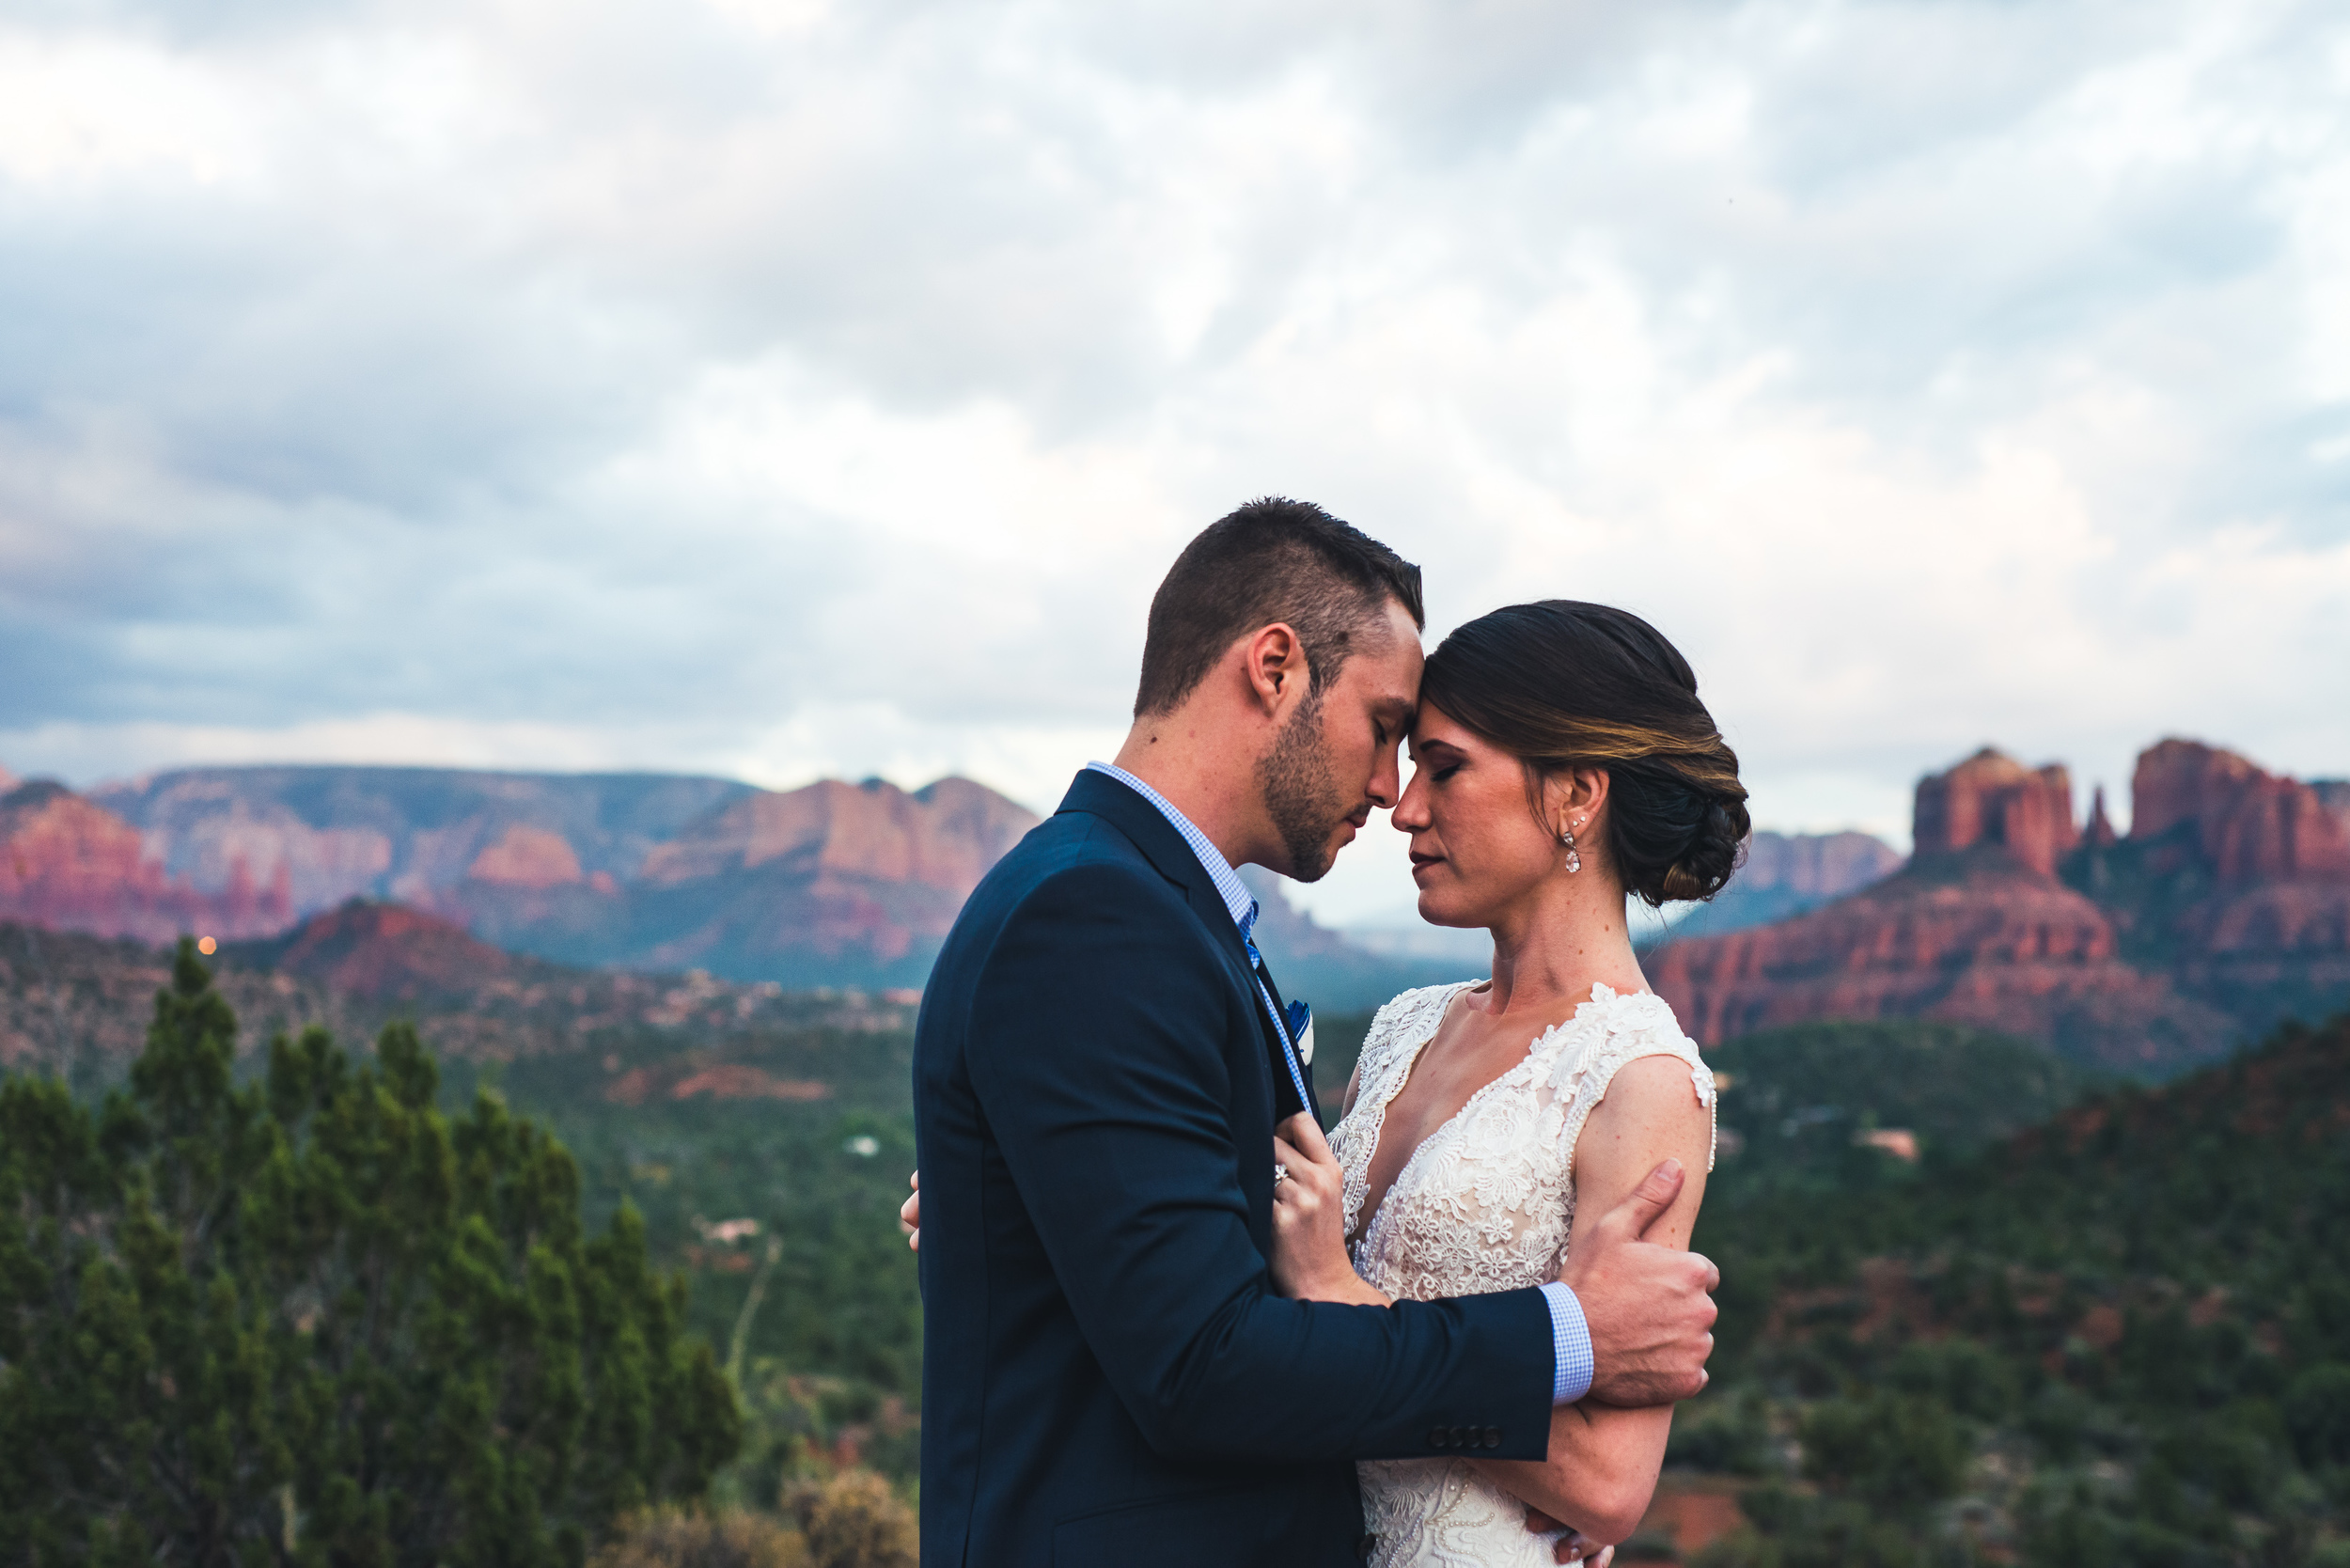 Wedding_Sedona (52 of 54).jpg